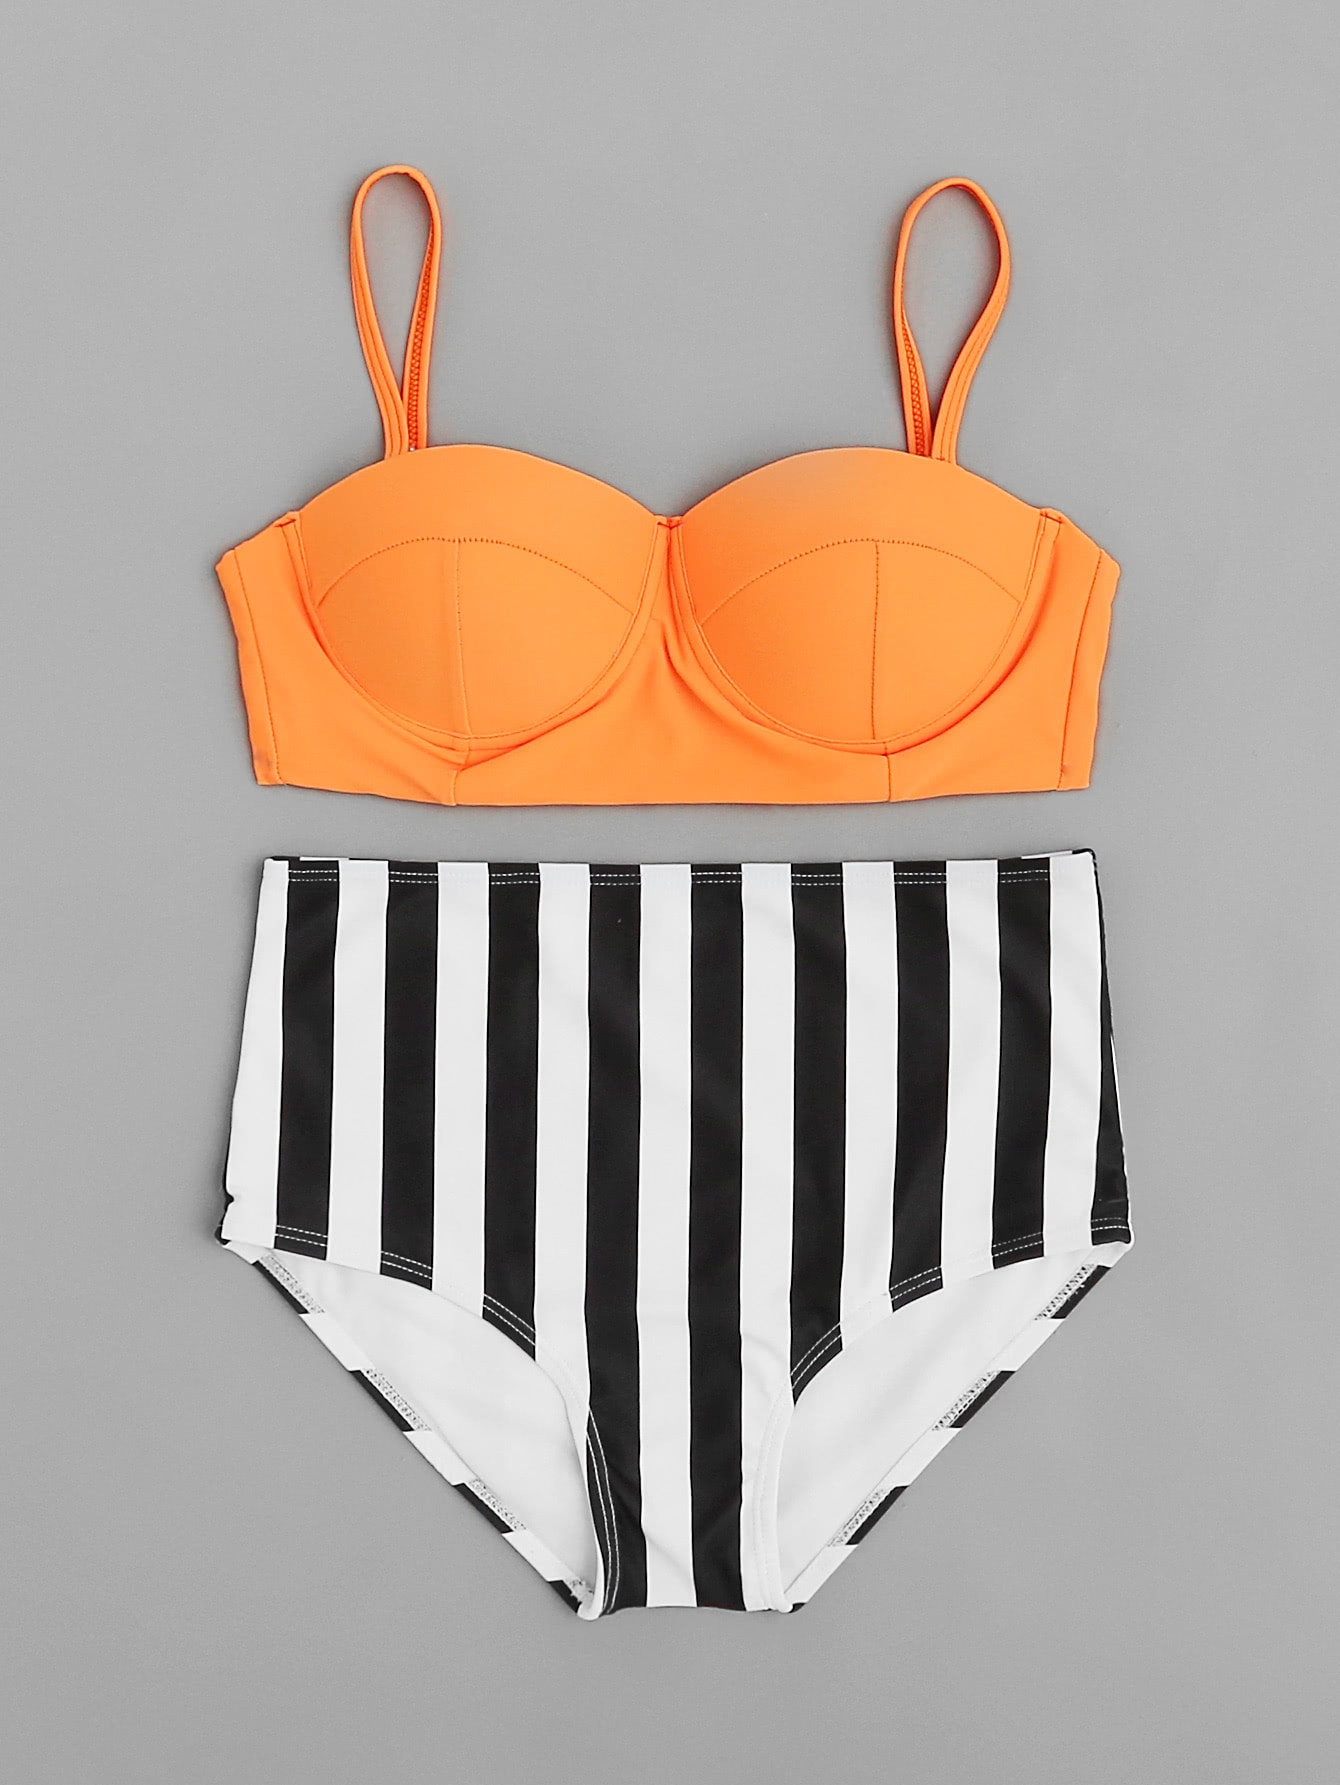 Vertical Striped High Waist Bustier Bikini Set vertical striped bedding set